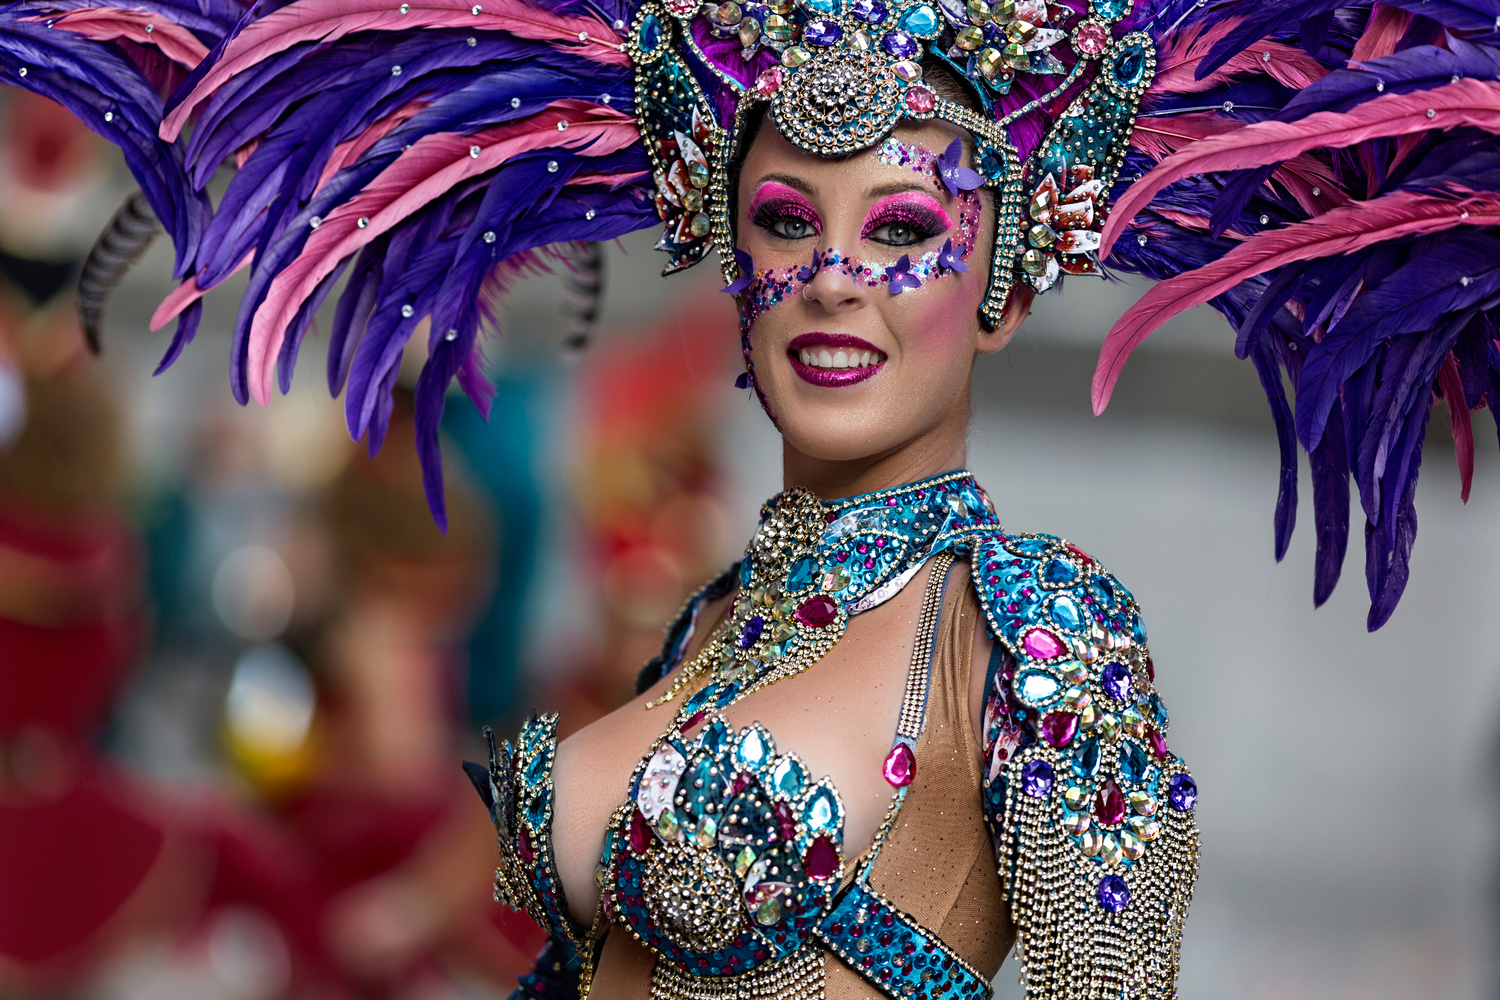 Carnival smile by Vicente Concha